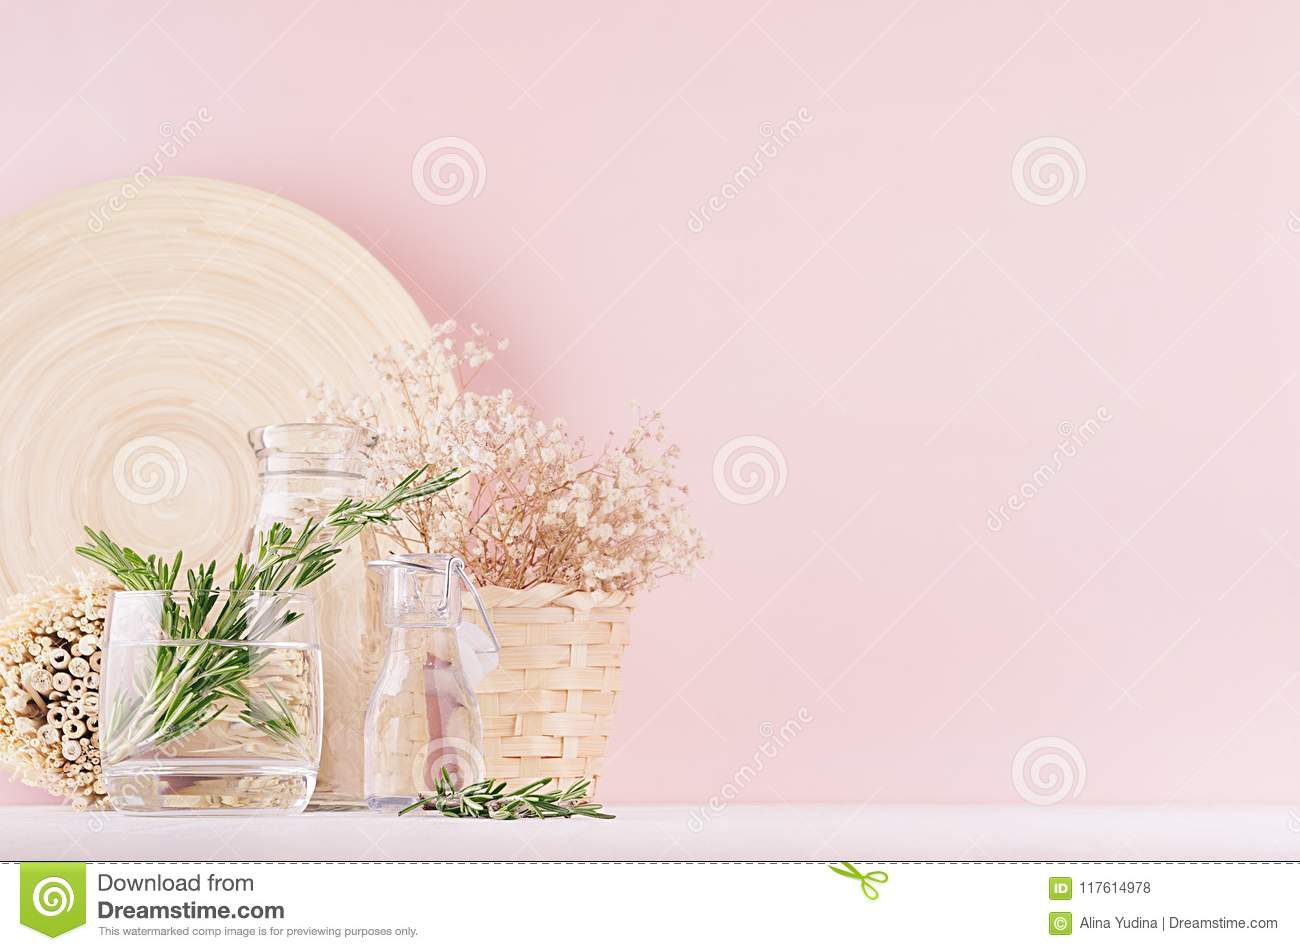 Modern soft light pink pastel home interior with green plant, dried white flowers, beige bamboo plate on white wood background.